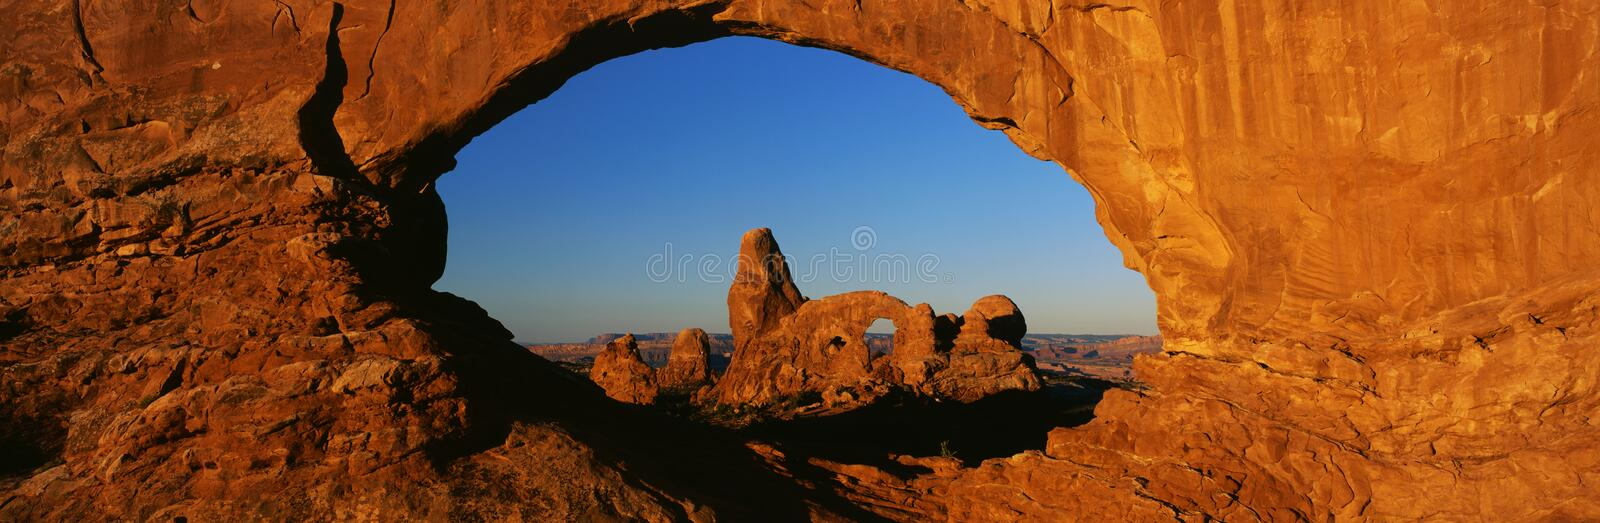 Download Turret Arch Stock Photography - Image: 23160902